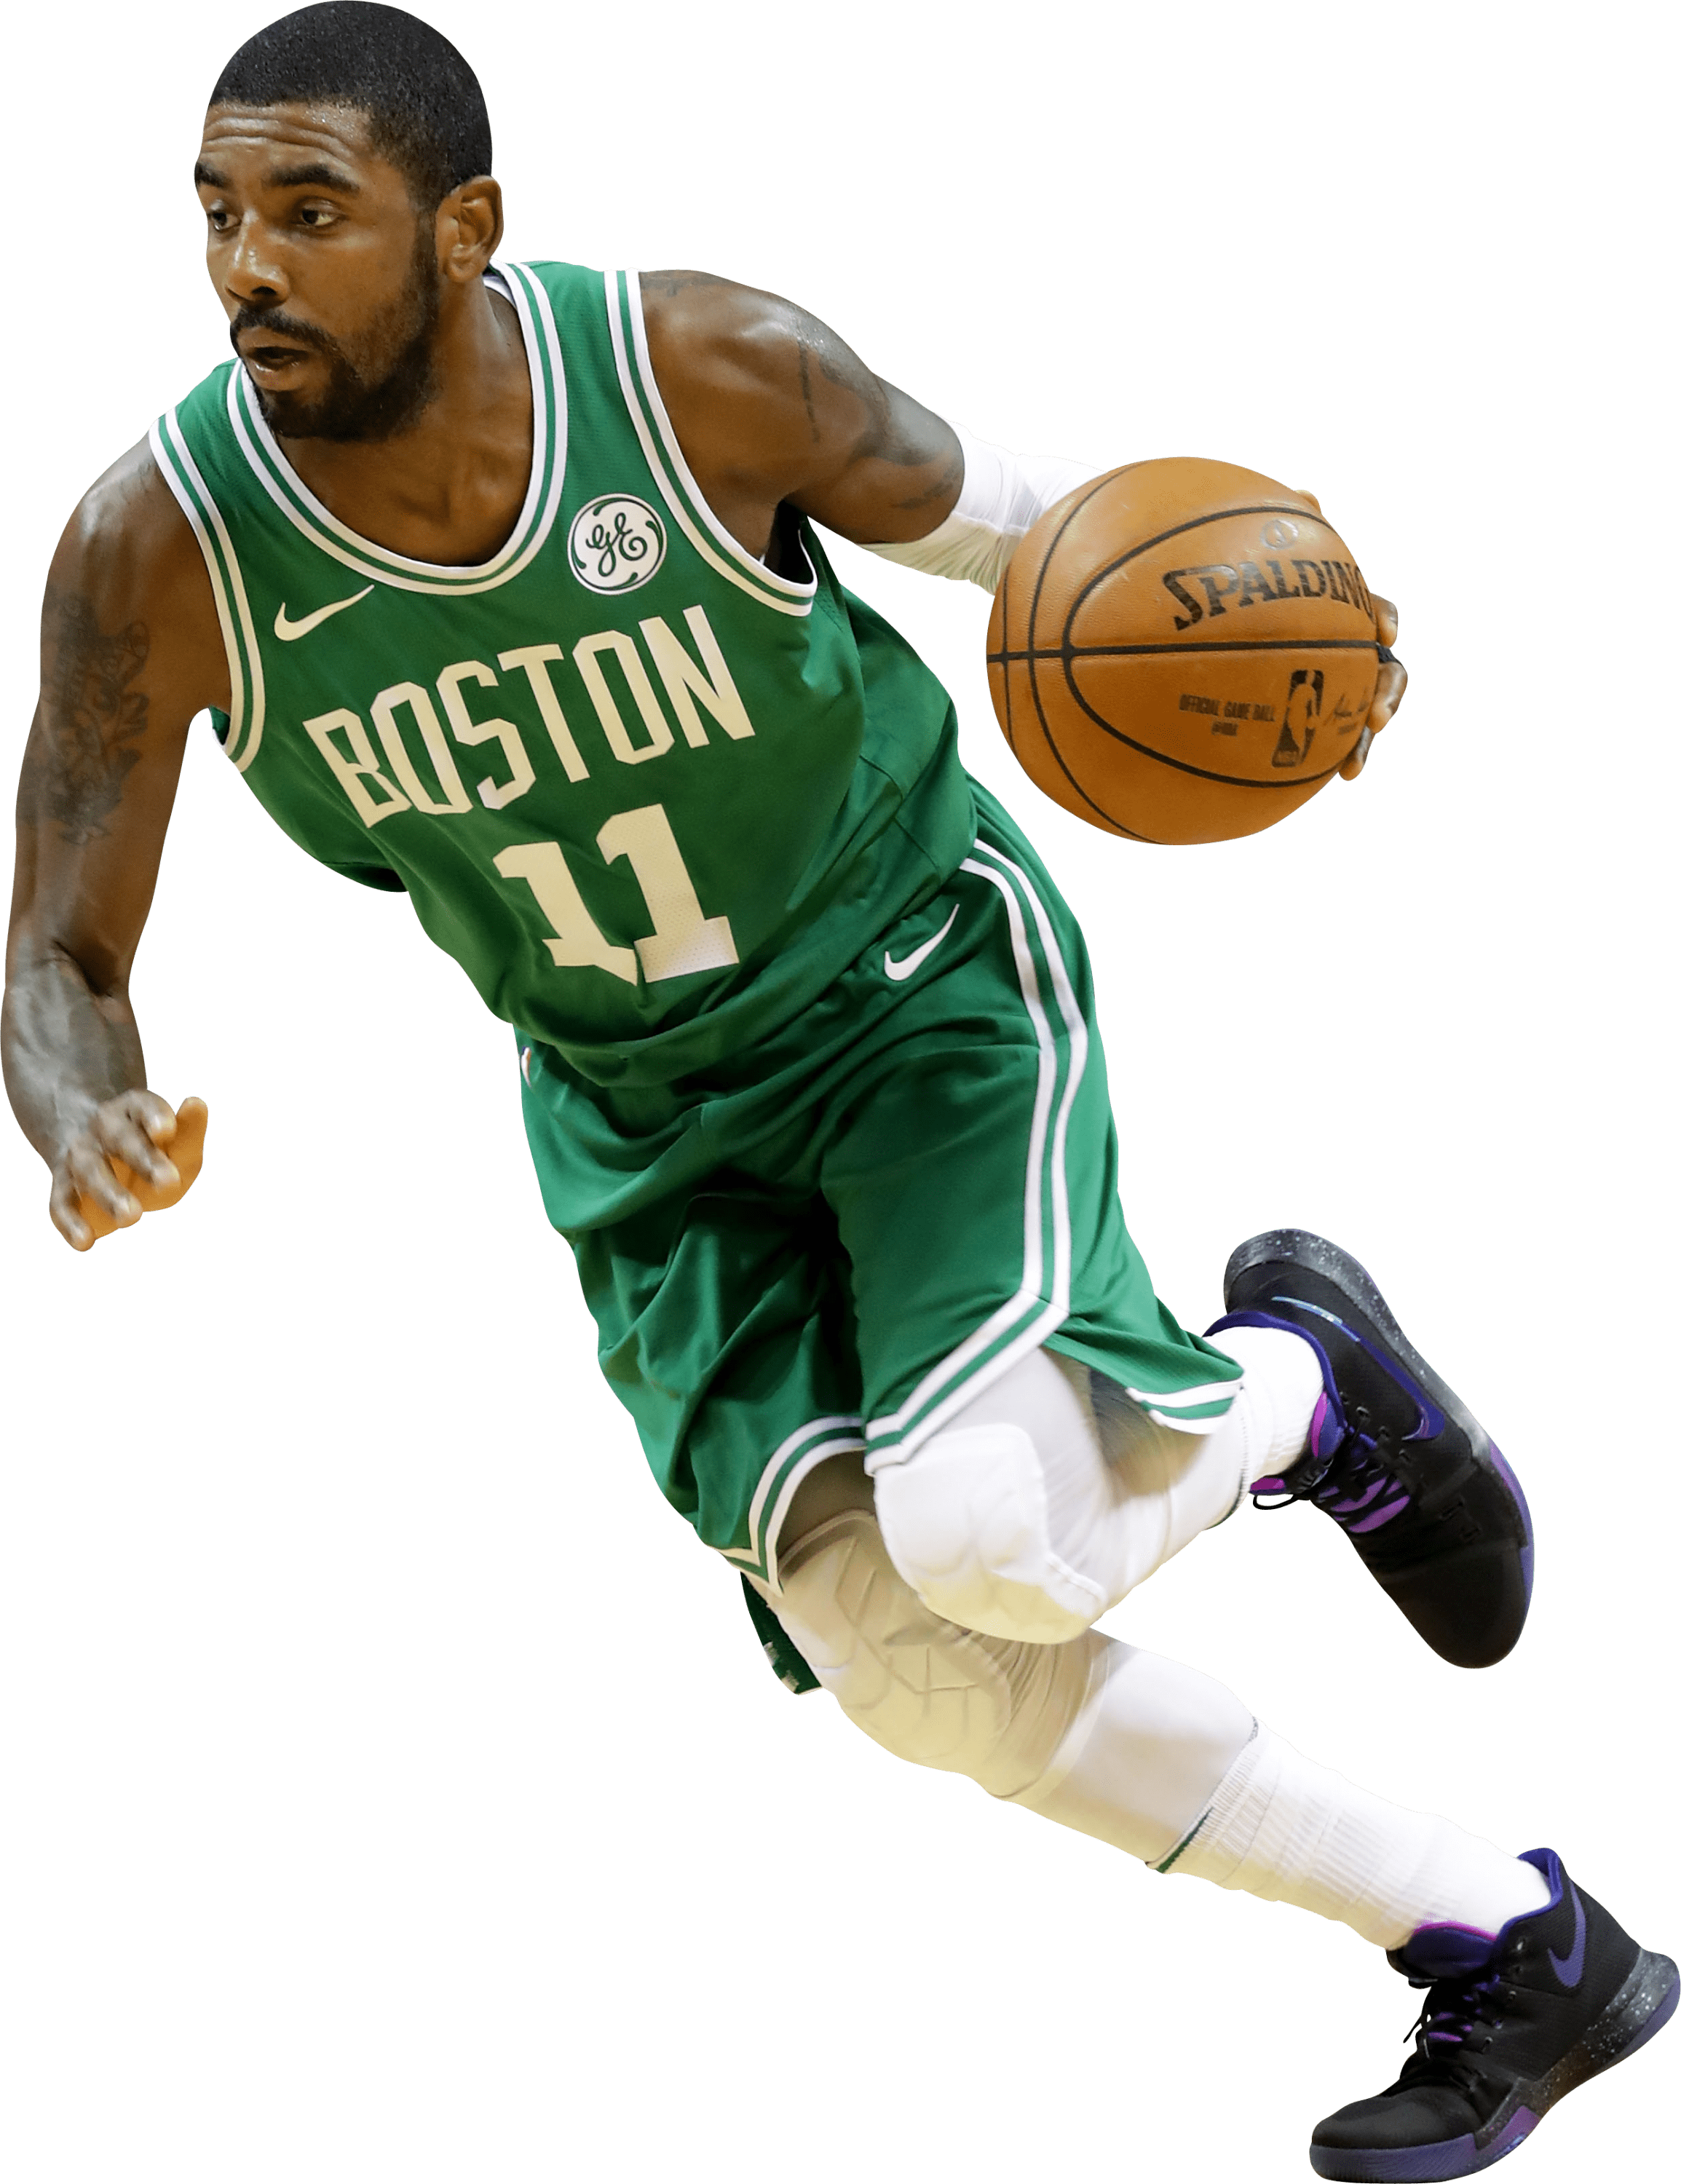 Boston celtics basketball clipart svg freeuse stock Kyrie Irving Boston Celtics Running transparent PNG - StickPNG svg freeuse stock